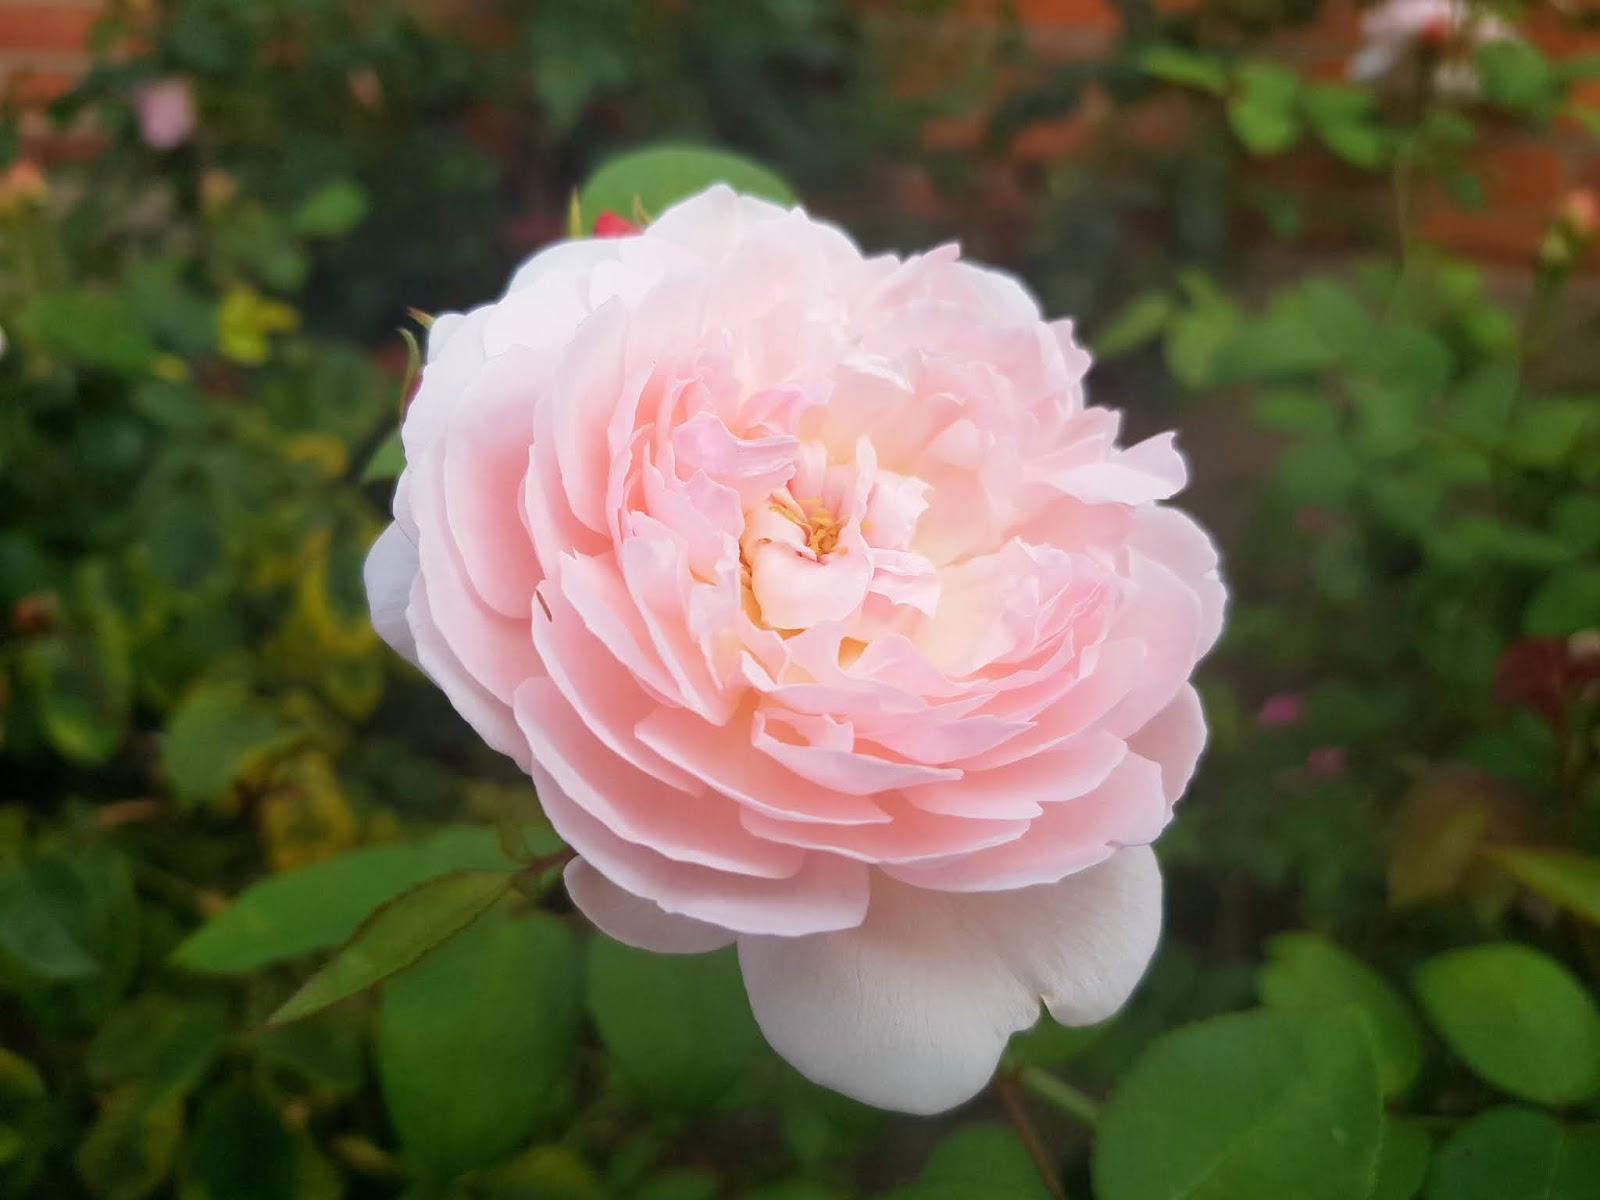 Pale pink rose Queen of Sweden